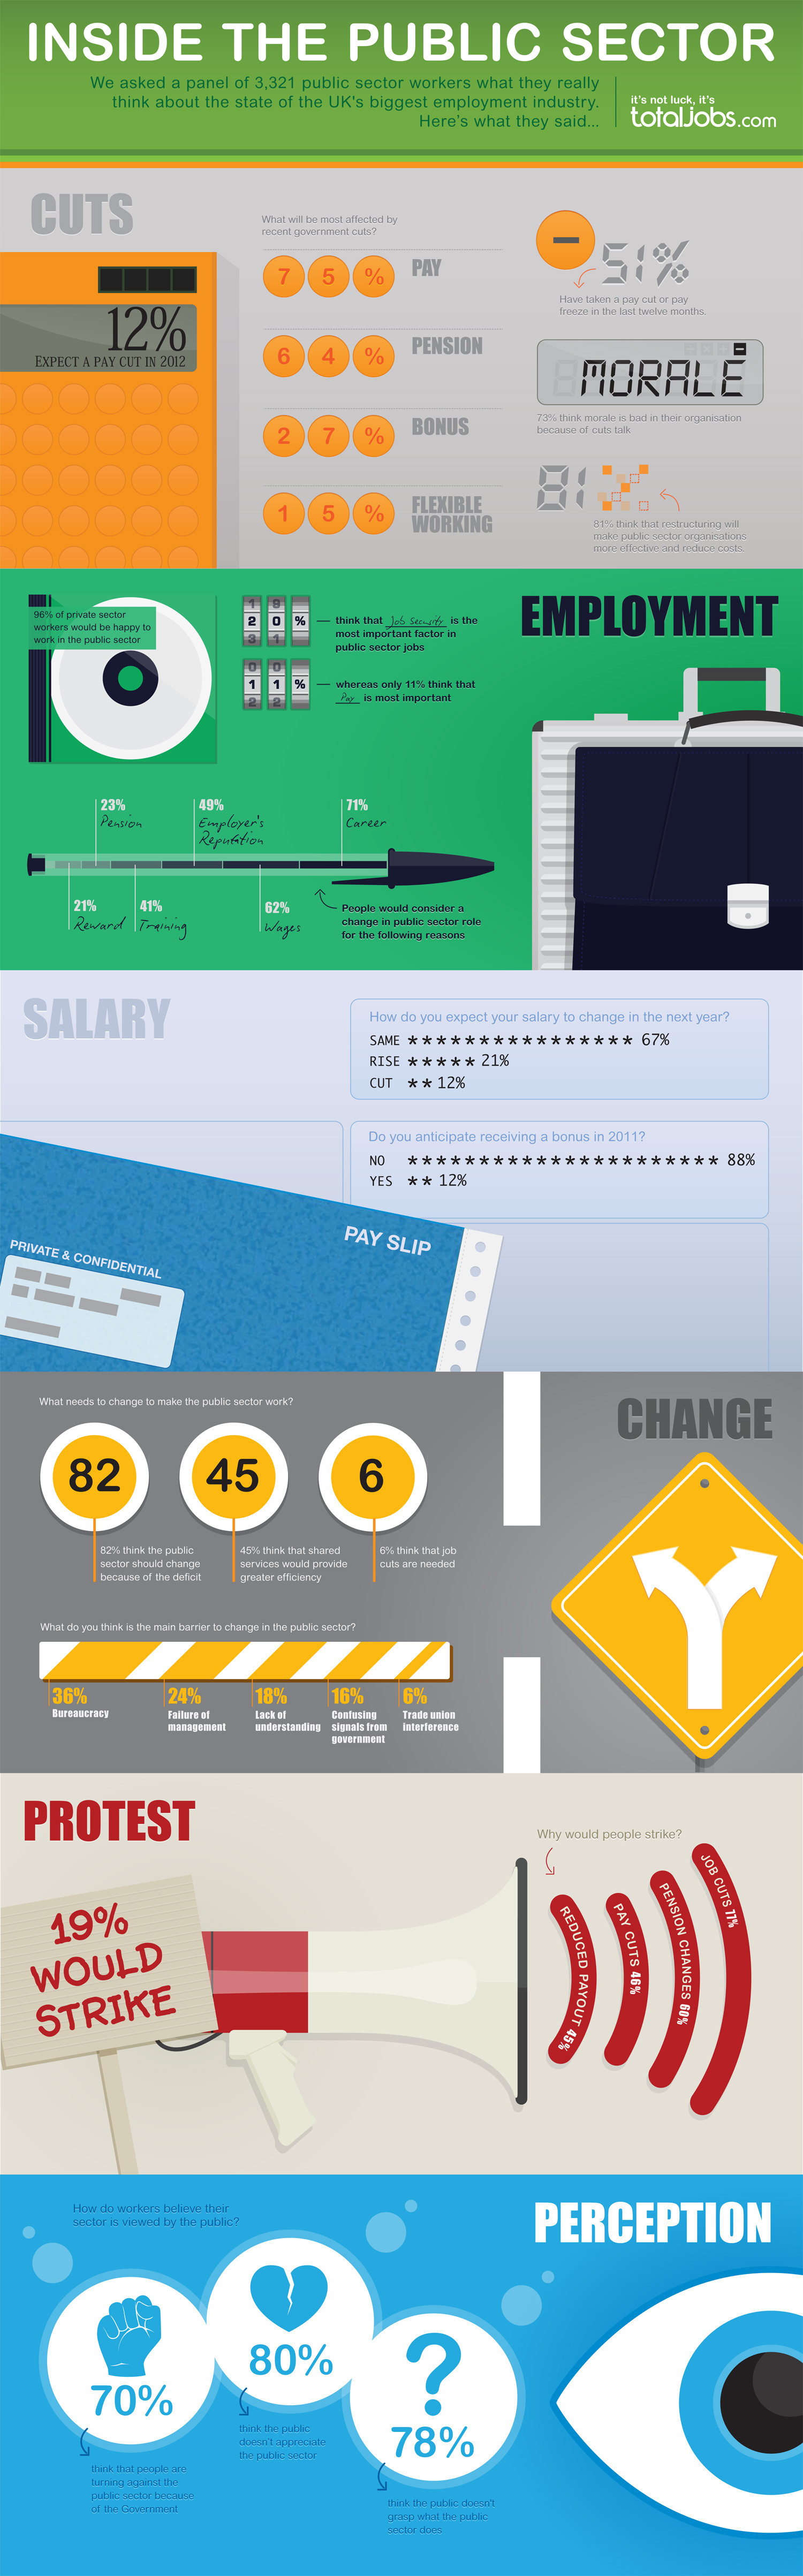 Inside the Public Sector Infographic